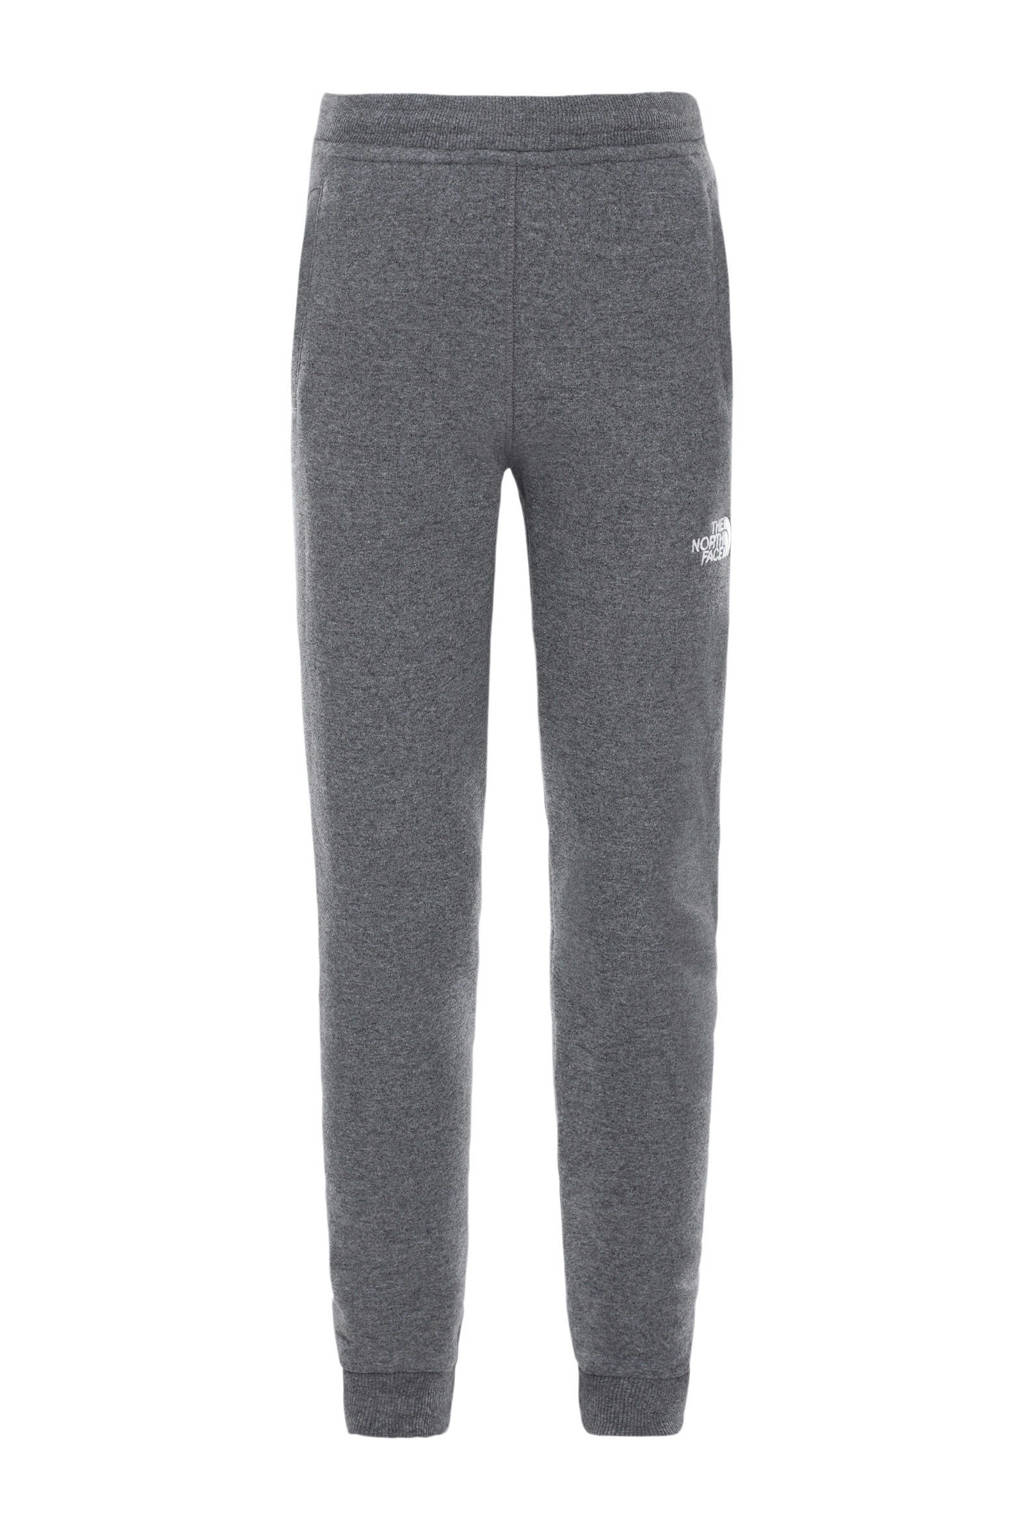 The North Face joggingbroek grijs melange, Grijs melange